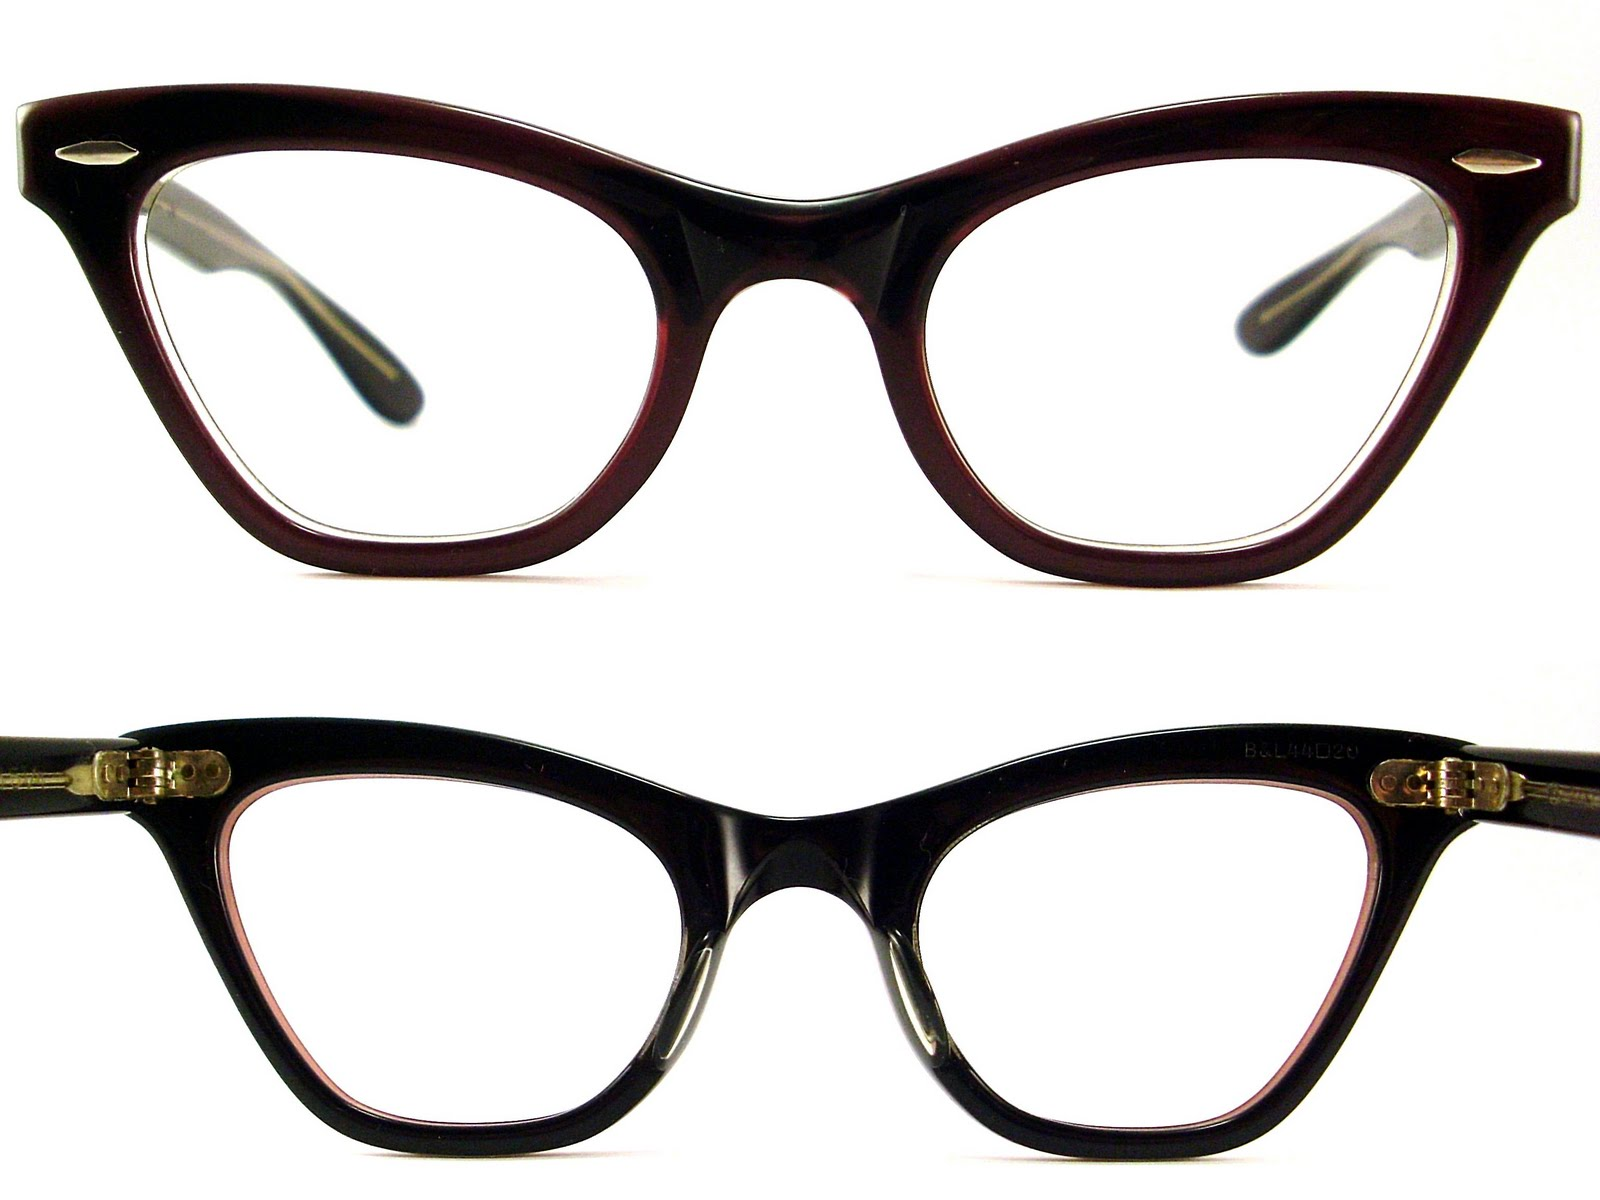 vintage cat eye eyeglasses sunglasses frame glasses